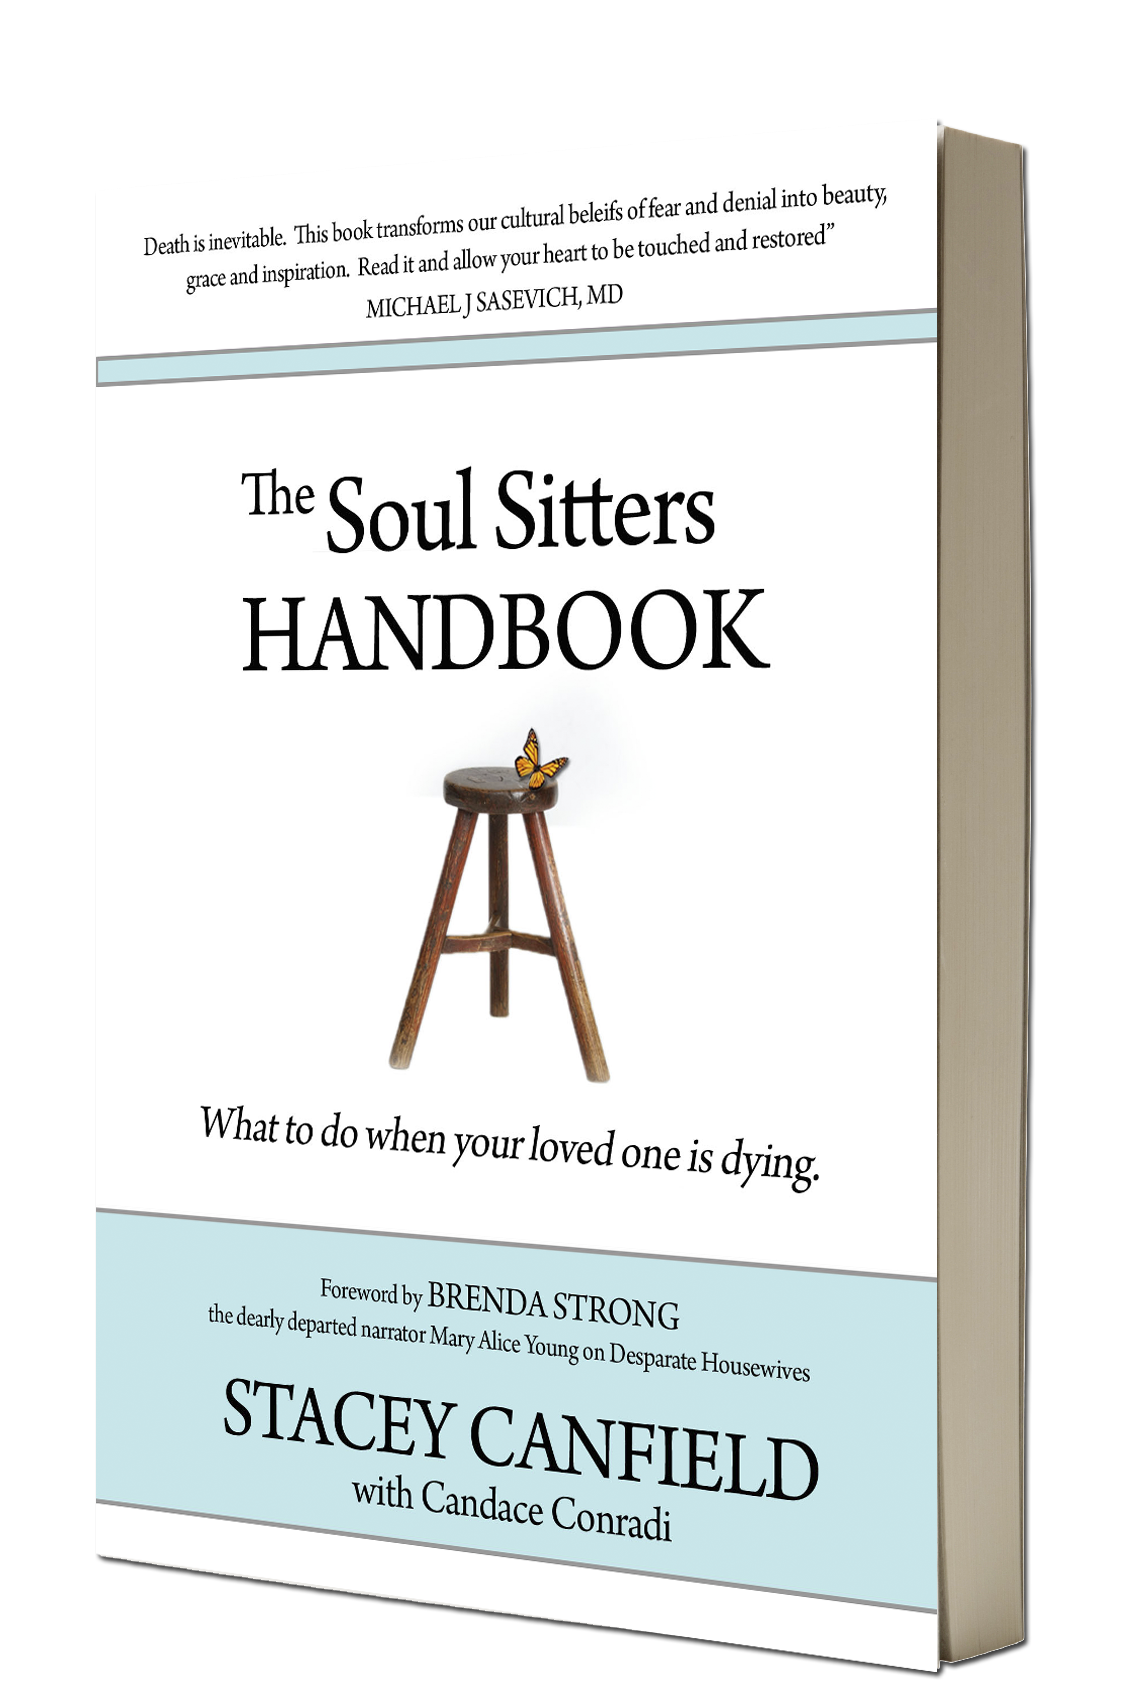 The Soul Sitters Handbook: What to do when you loved one is dying